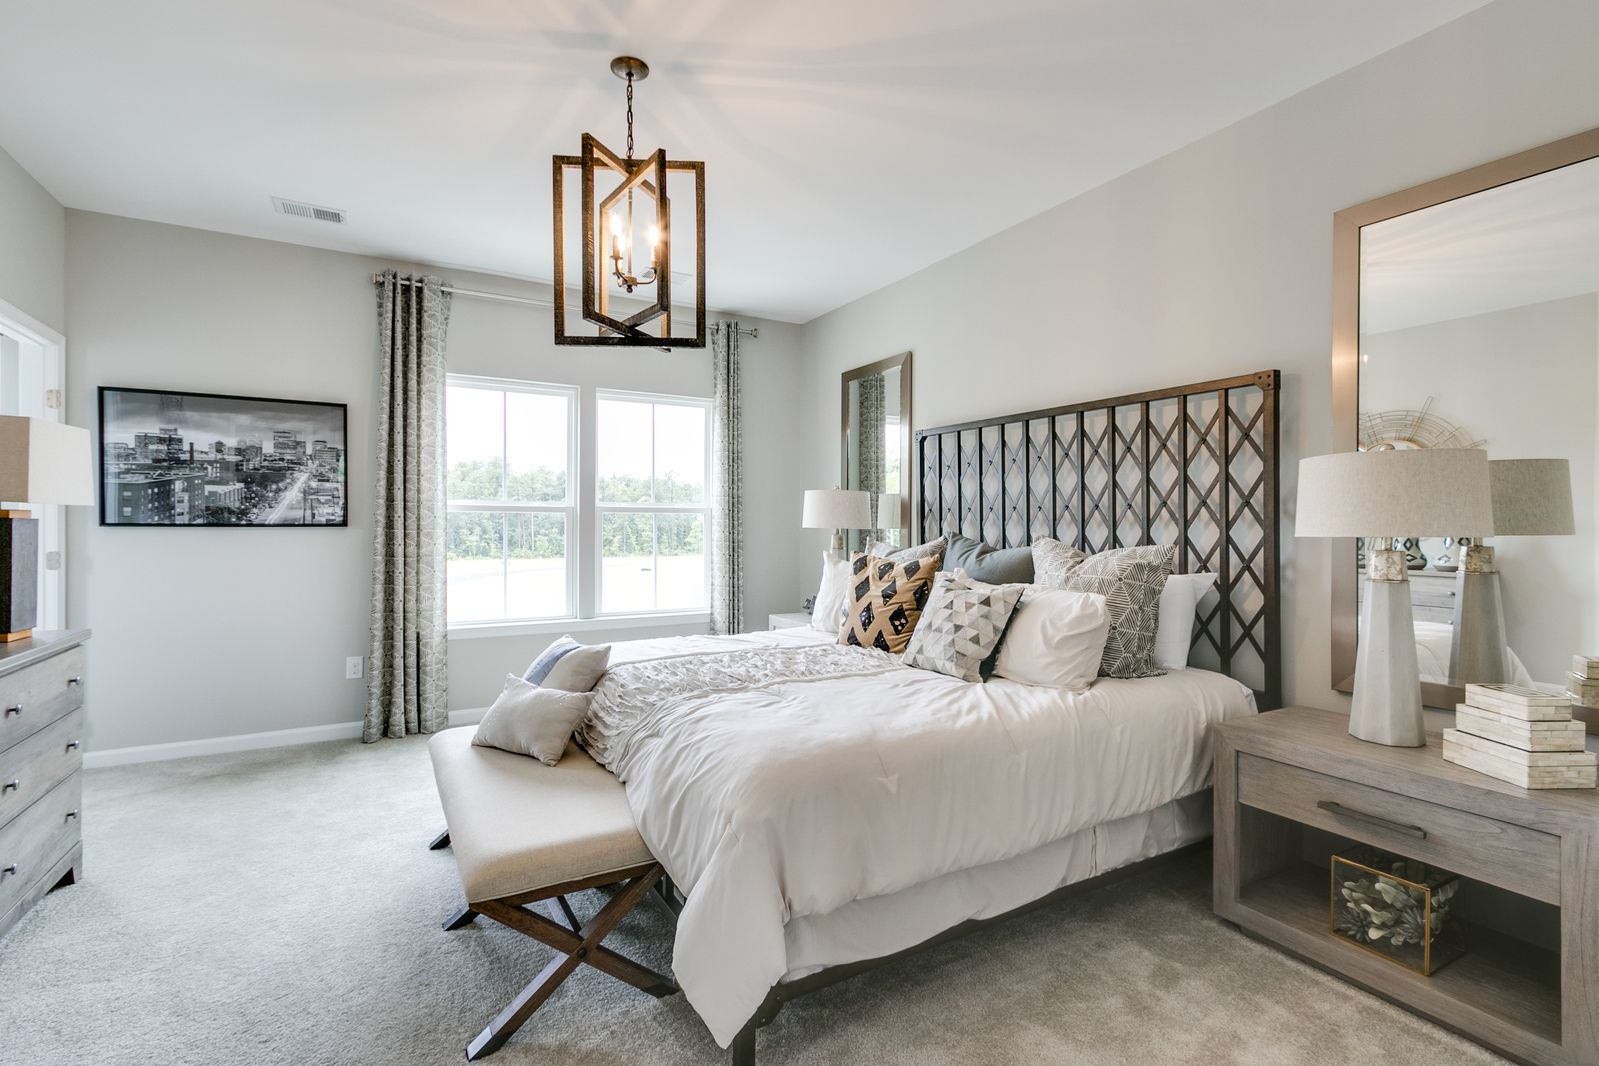 Bedroom featured in the Mozart Attic By Ryan Homes in Washington, MD